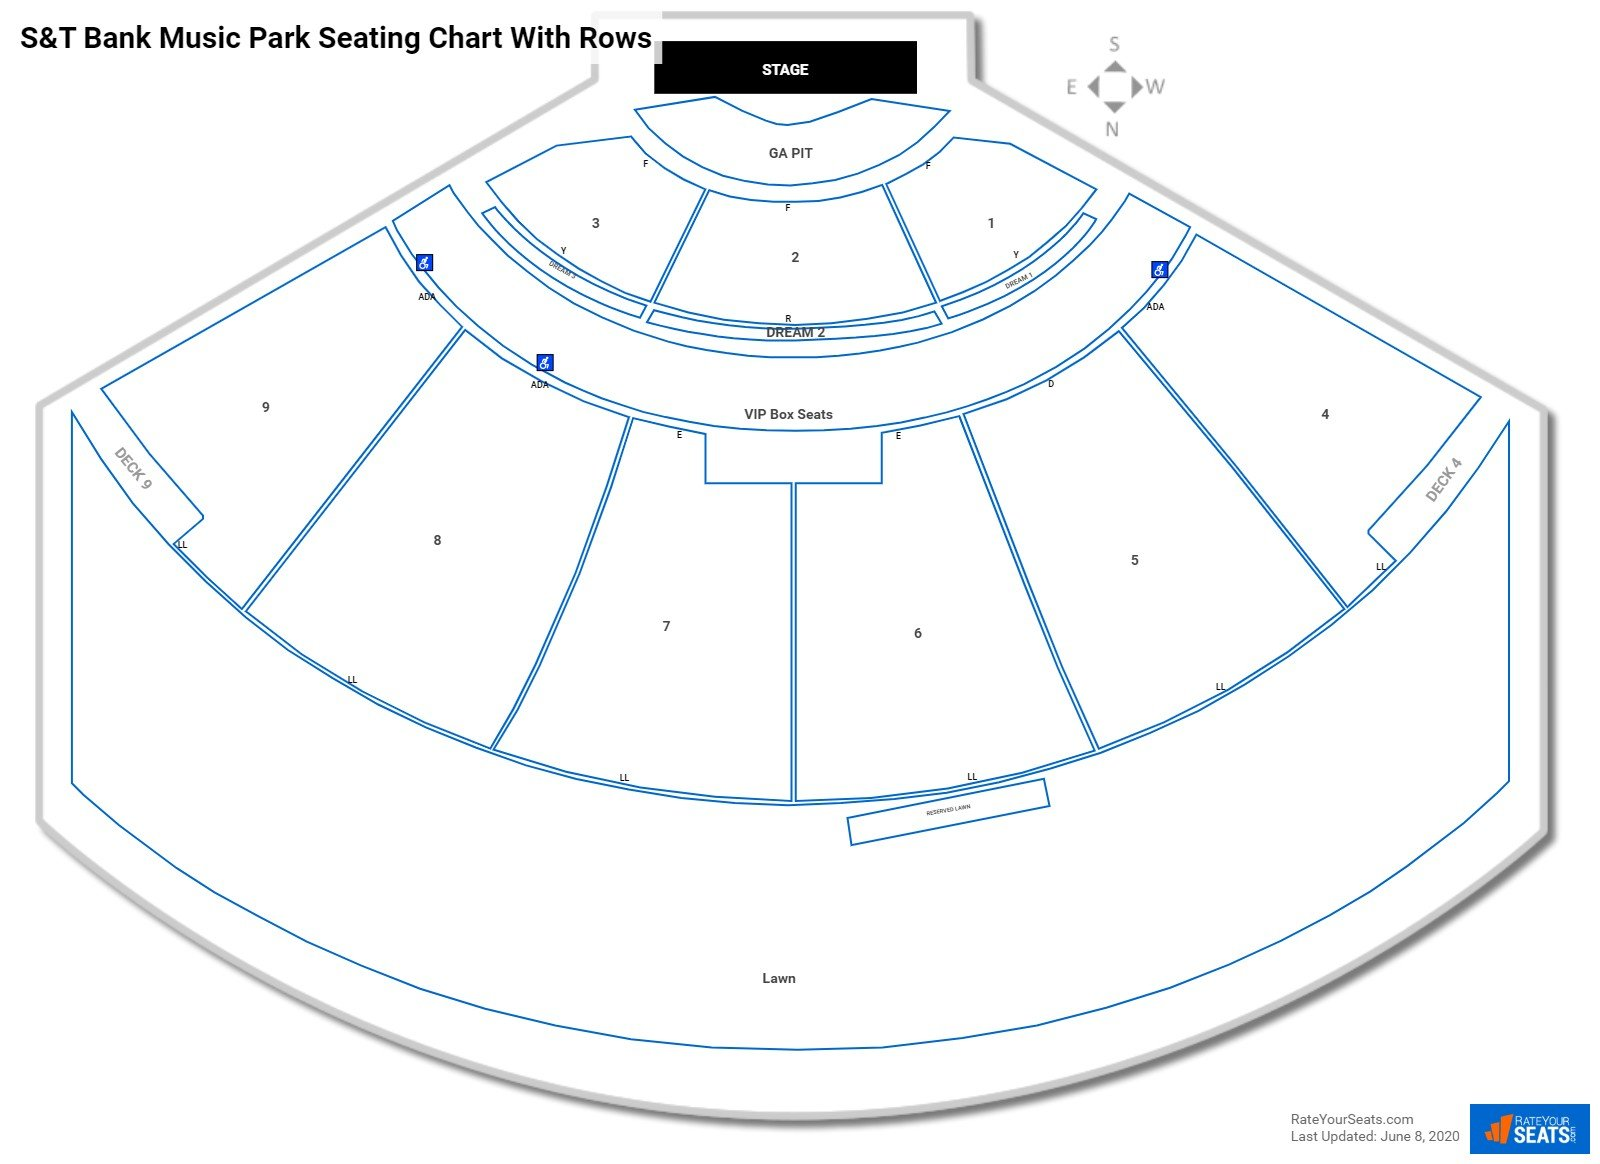 The Pavilion at Star Lake seating chart with rows